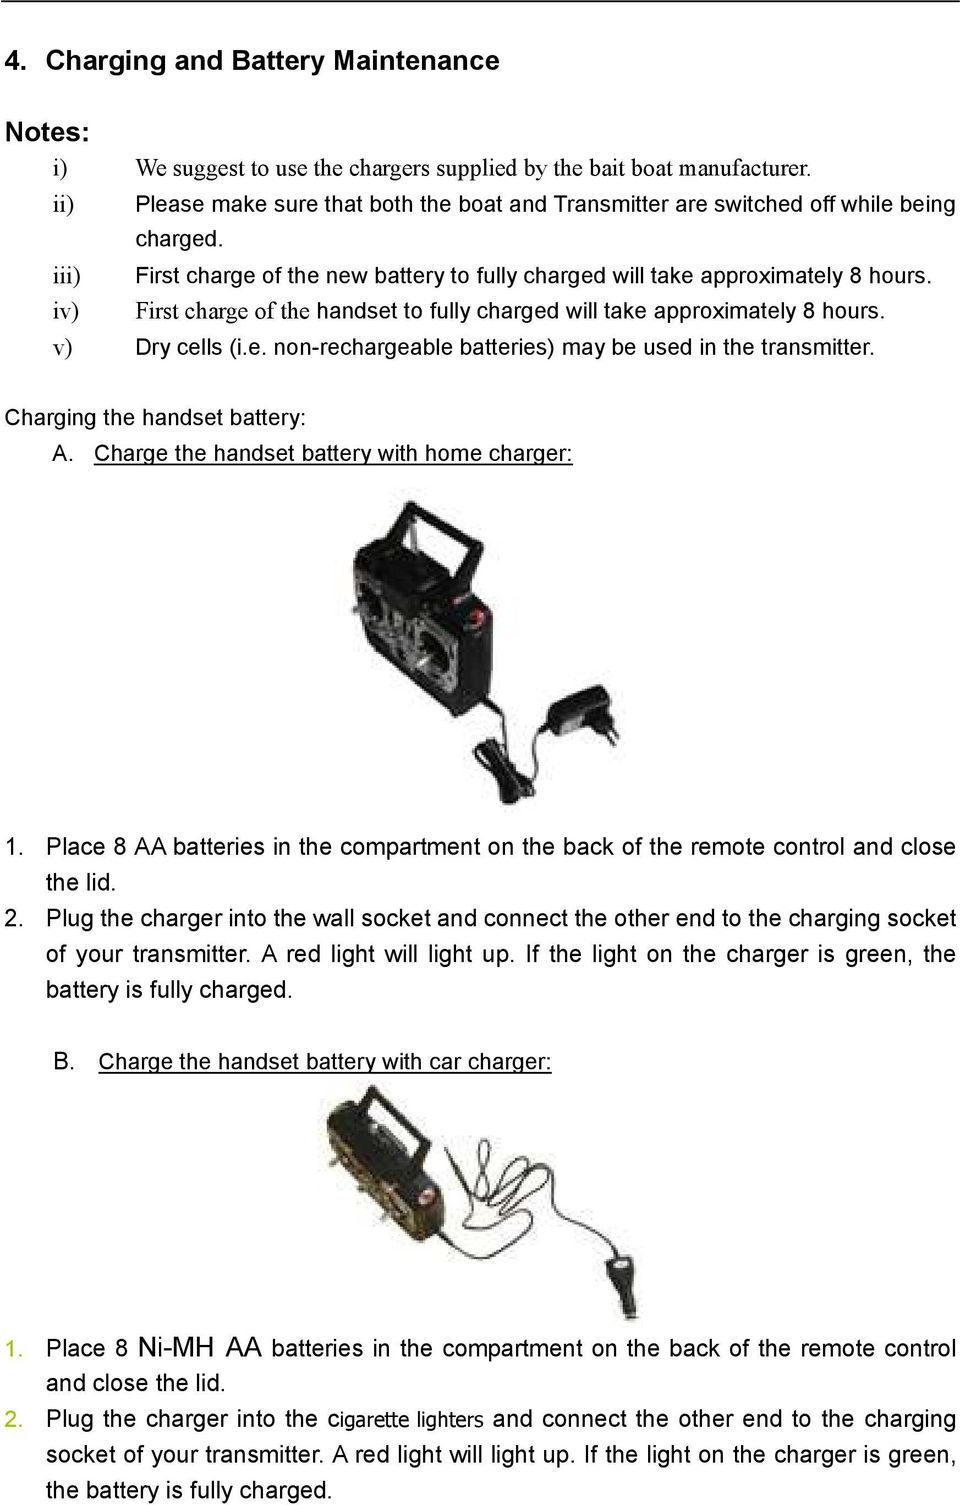 hight resolution of first charge of the handset to fully charged will take approximately 8 hours v